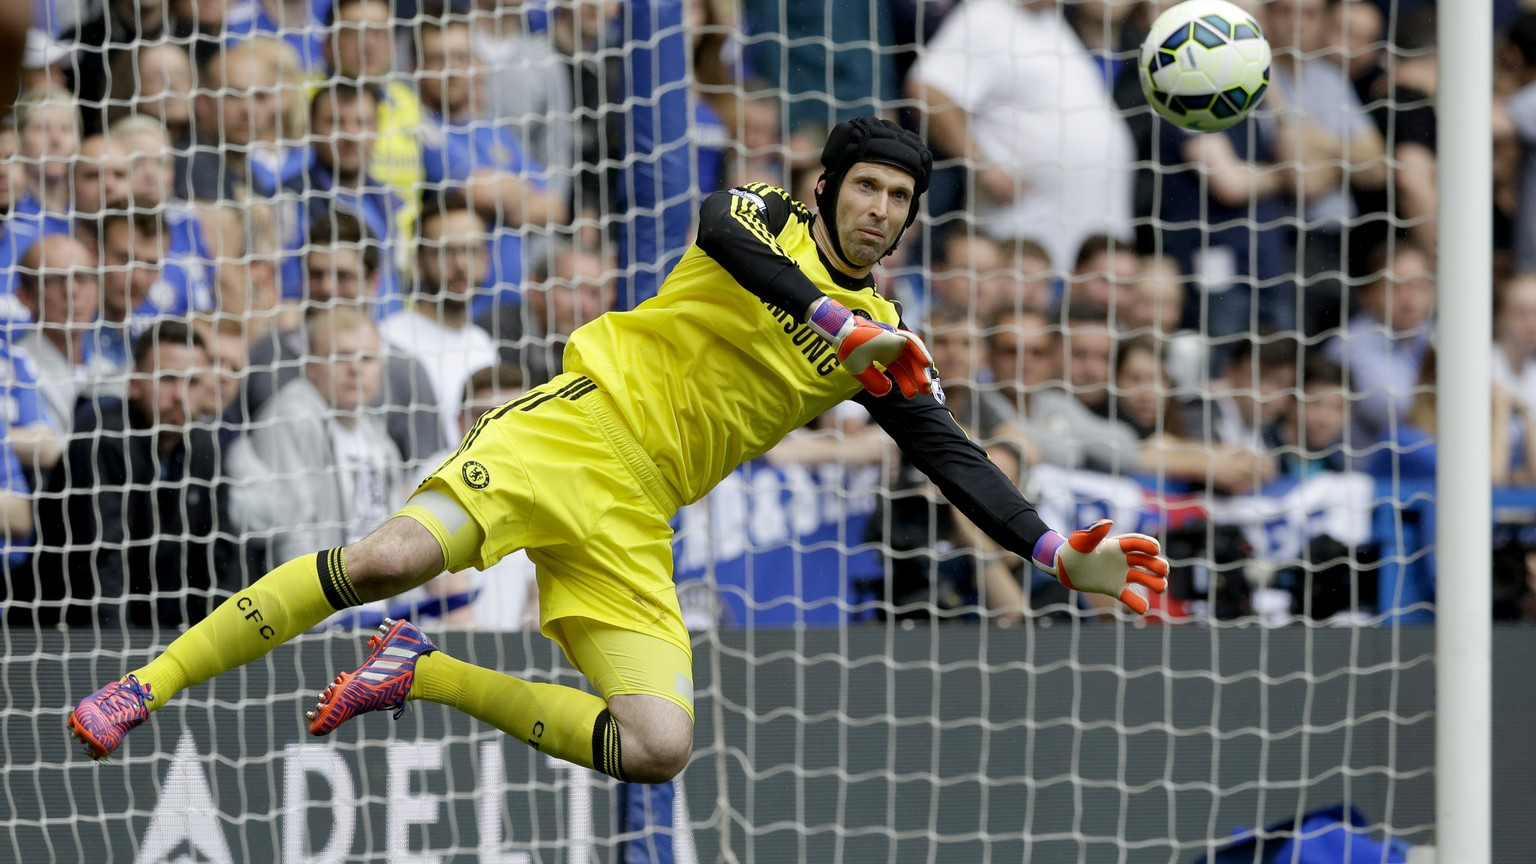 FILE - In this Sunday, May 24, 2015 file photo, Chelsea's goalkeeper Petr Cech makes a save during the English Premier League soccer match between Chelsea and Sunderland at Stamford Bridge stadium in London. Goalkeeper Cech ended his trophy-filled, 11-year stay at Chelsea by signing for Premier League rival Arsenal on Monday, June 29, 2015 after losing his starting place at the English champions. (AP Photo/Matt Dunham, File)